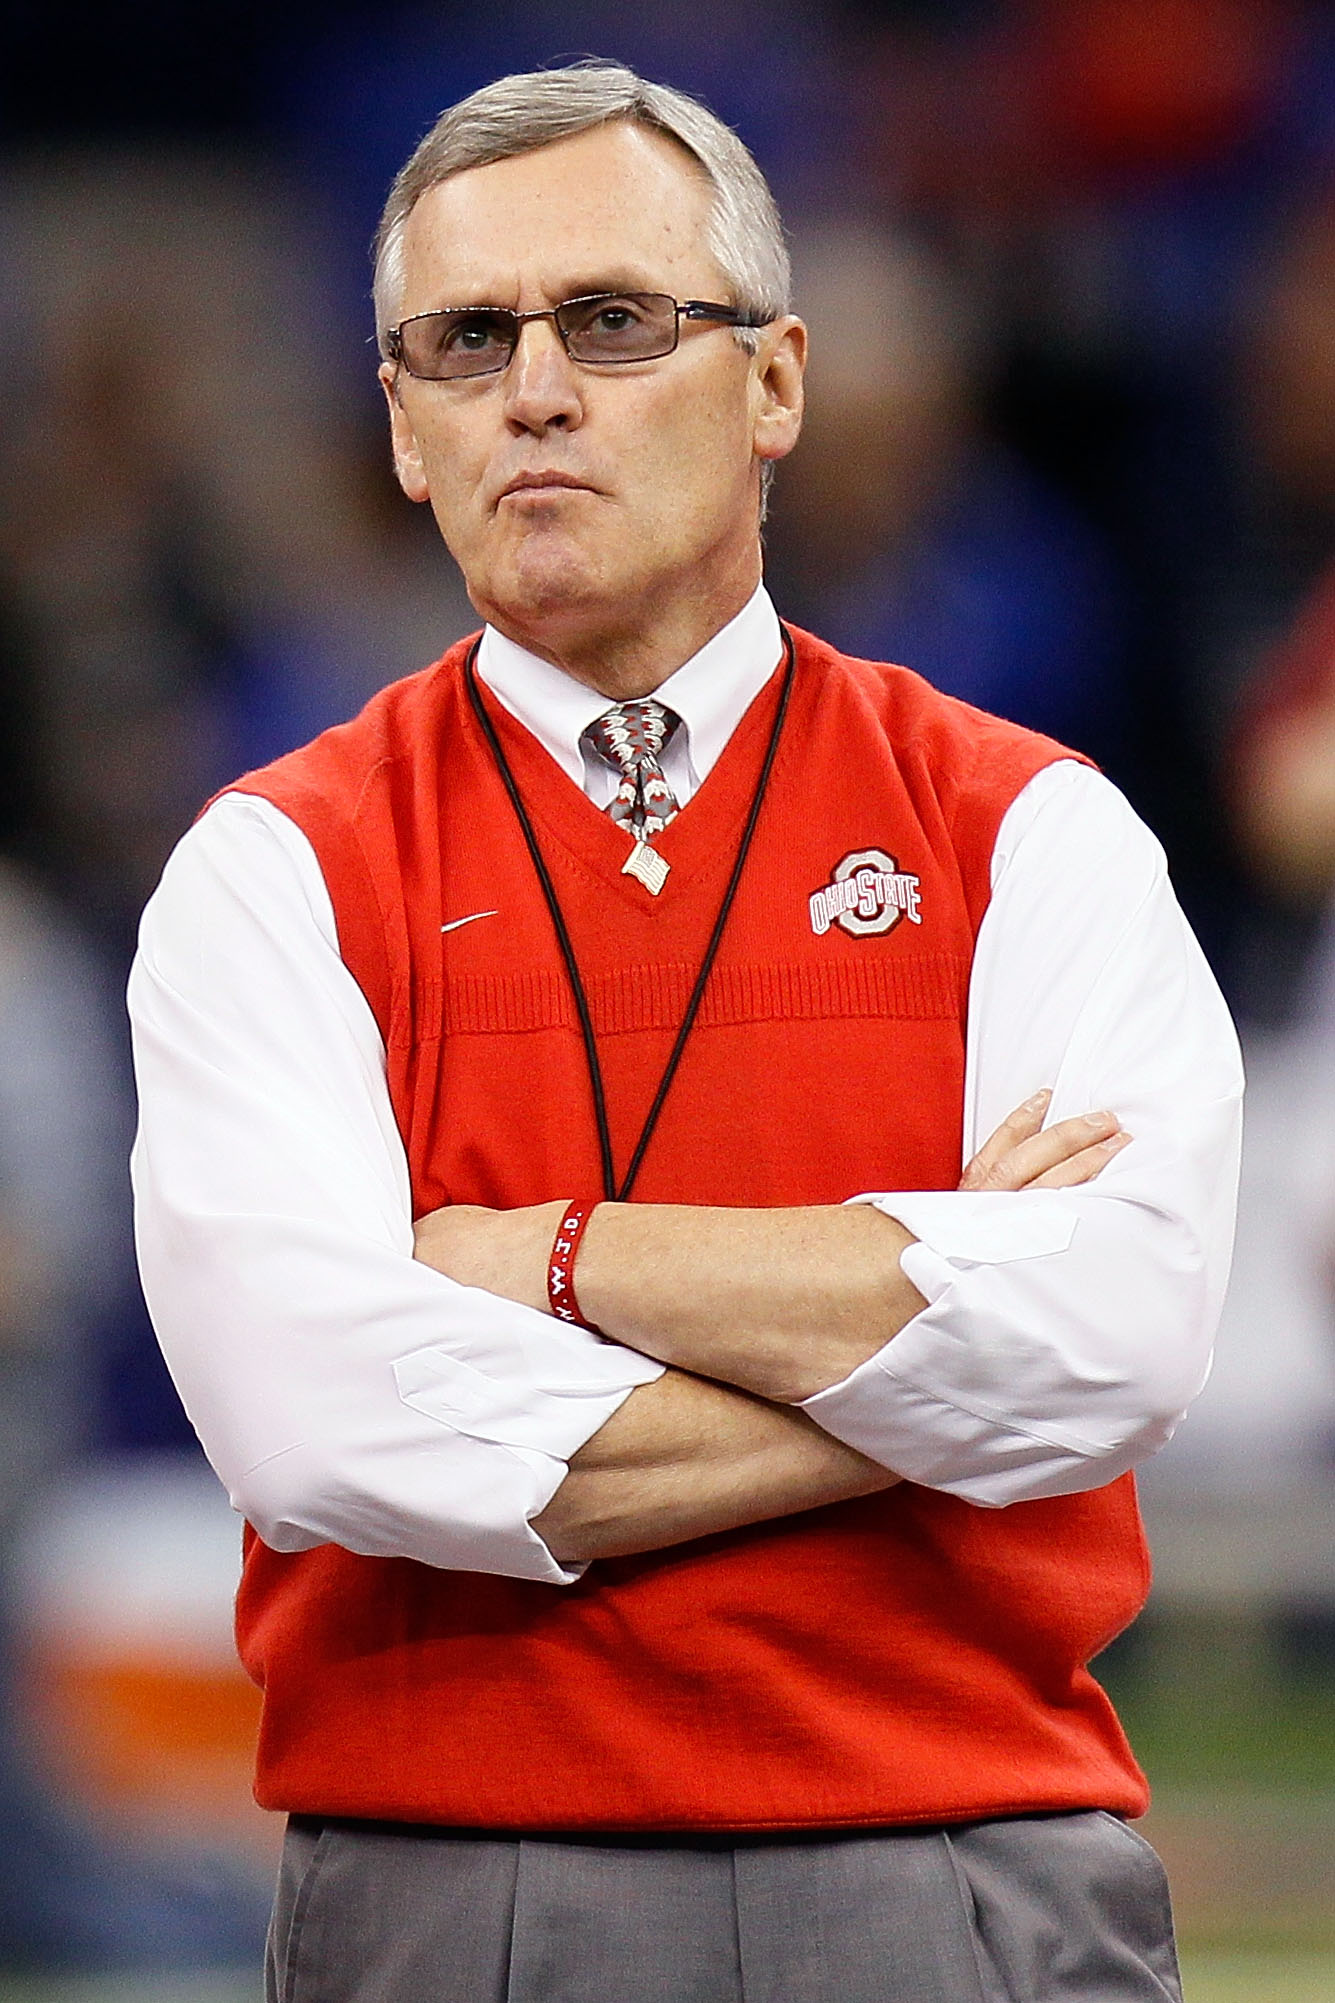 NEW ORLEANS, LA - JANUARY 04:  Head coach Jim Tressel of the Ohio State Buckeyes looks on before the Allstate Sugar Bowl against the Arkansas Razorbacks at the Louisiana Superdome on January 4, 2011 in New Orleans, Louisiana.  (Photo by Kevin C. Cox/Getty